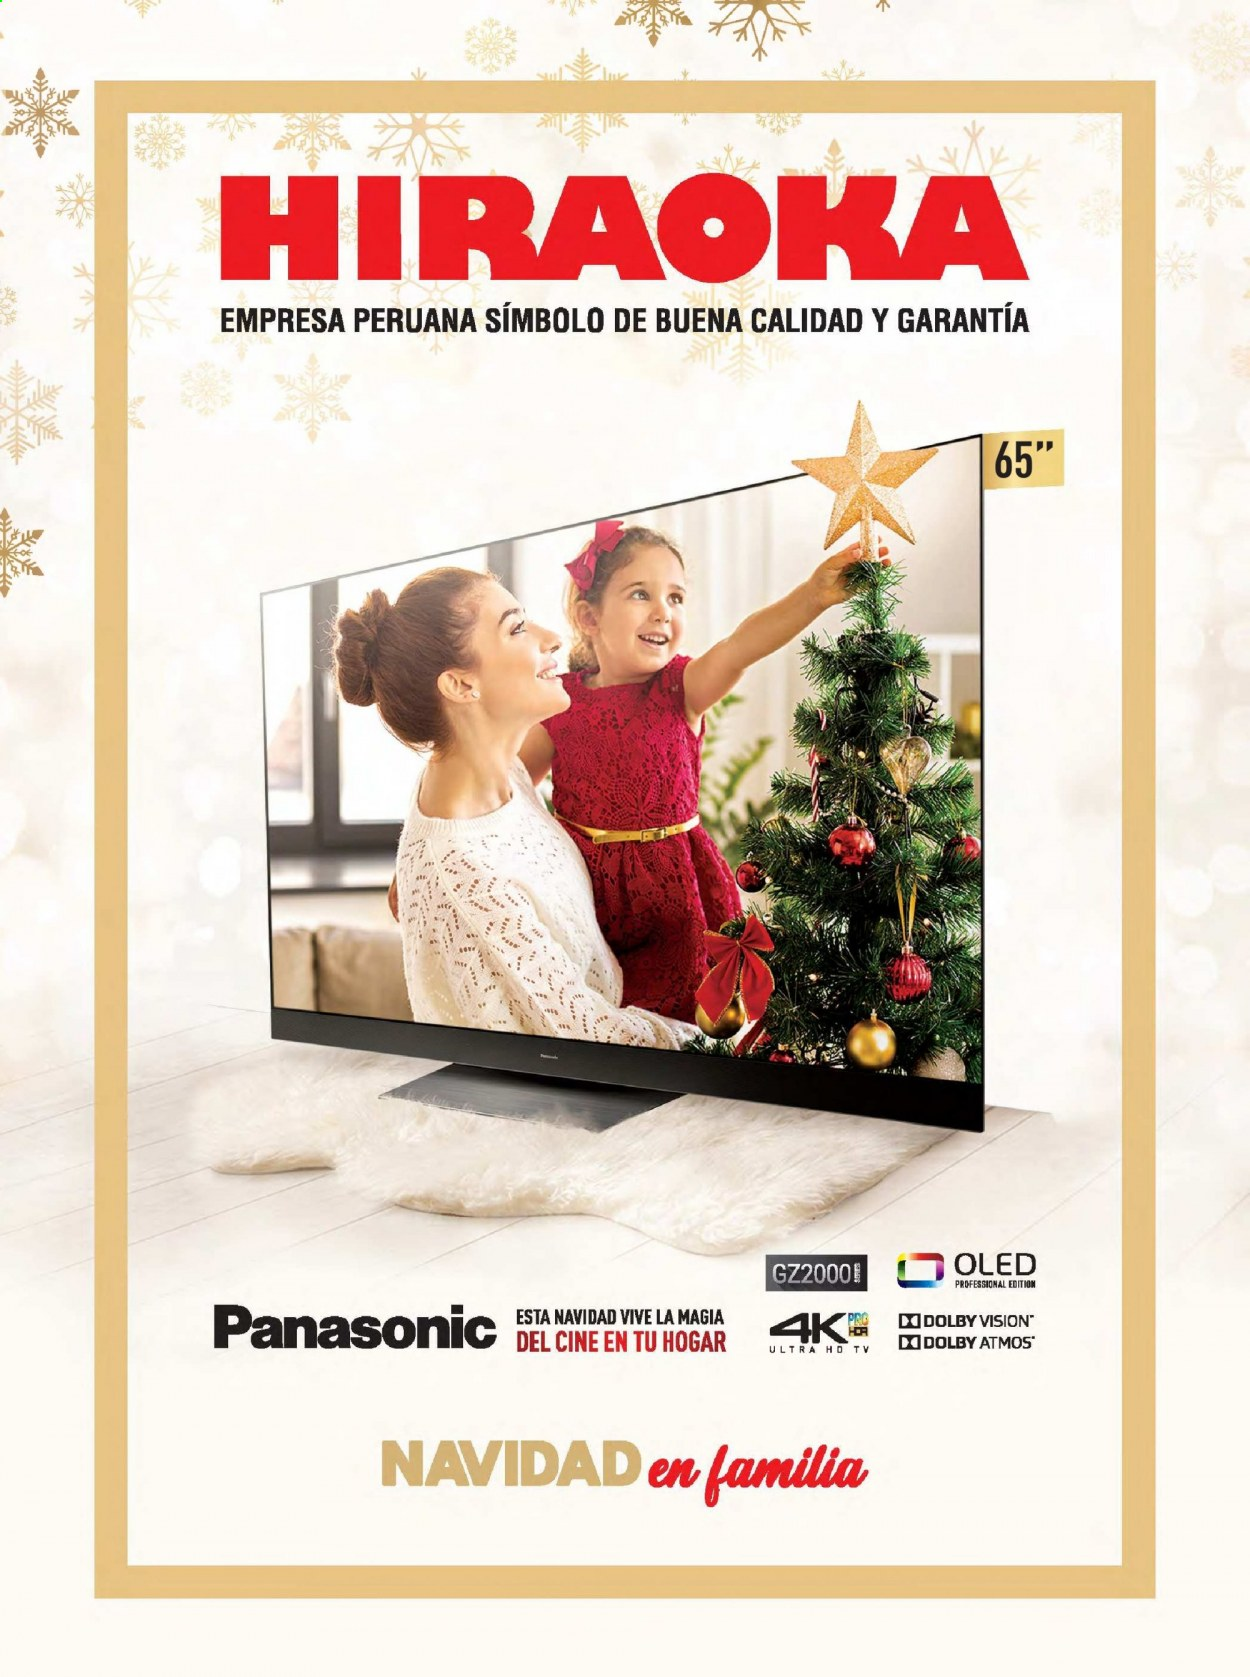 Folleto actual Importaciones Hiraoka - 5.12.2020 - 31.12.2020 - Ventas - tv, ultra hd, panasonic. Página 1.